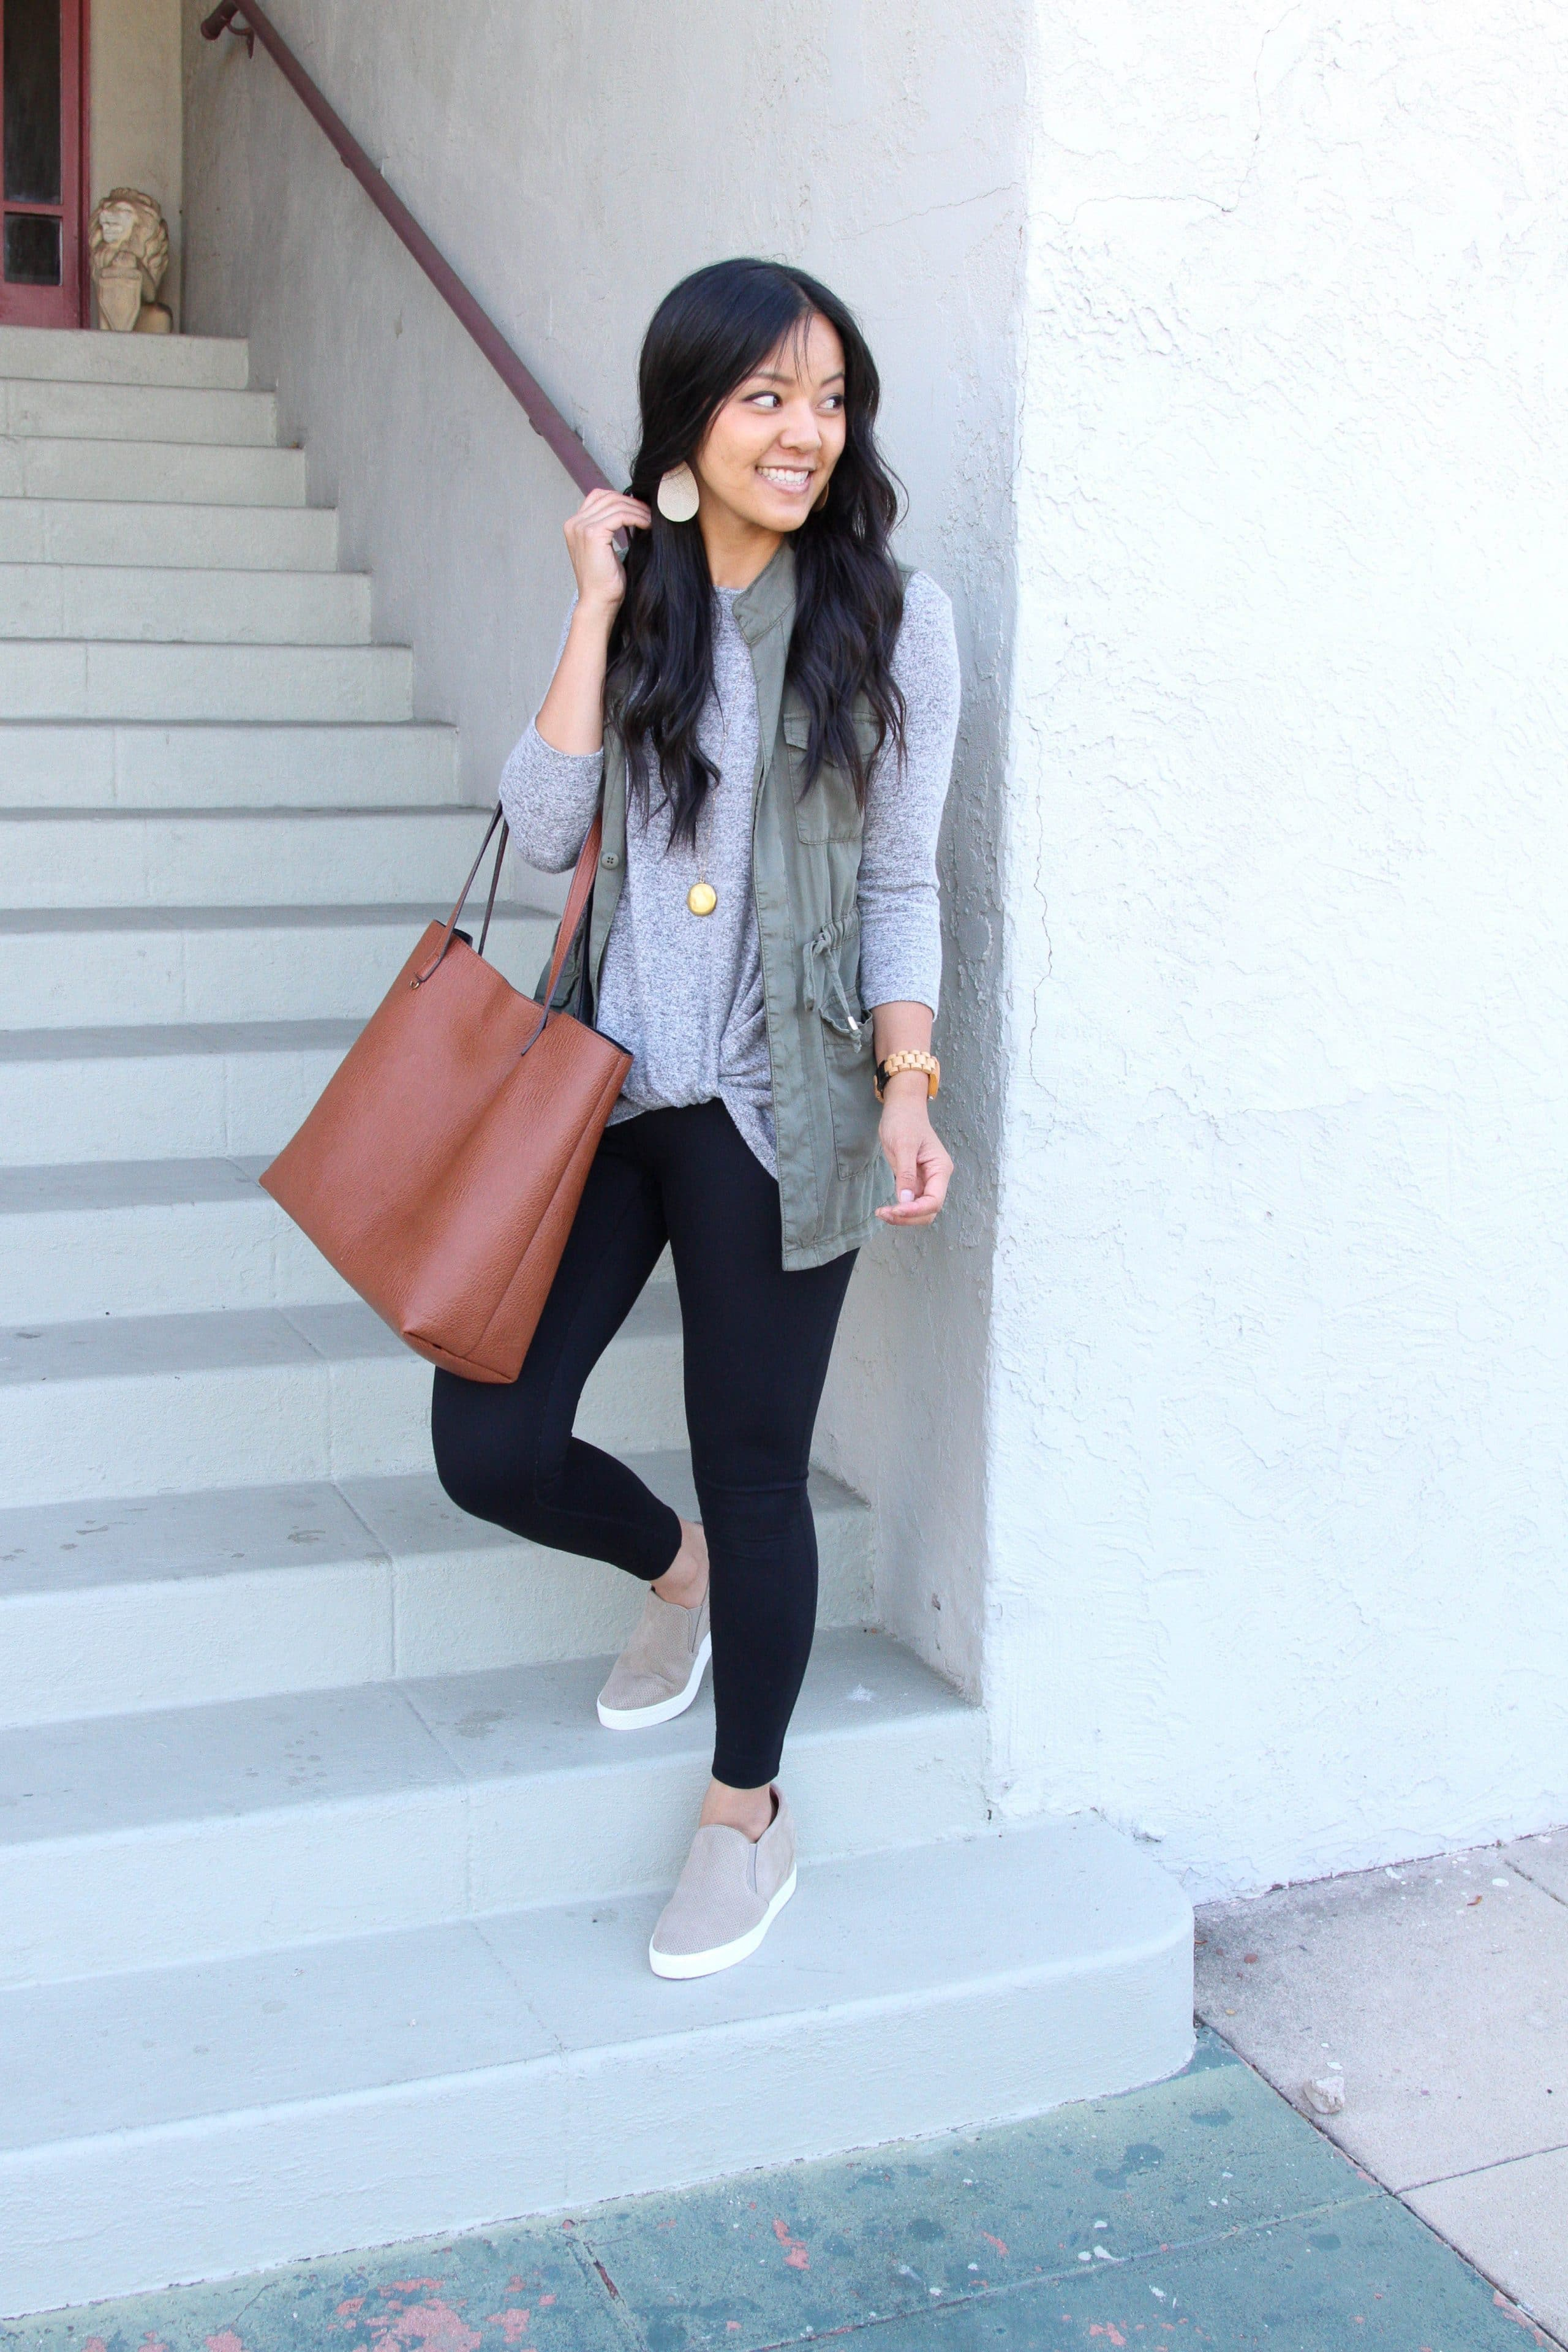 olive utility vest + grey twist top + black leggings + taupe sneakers + brown tote